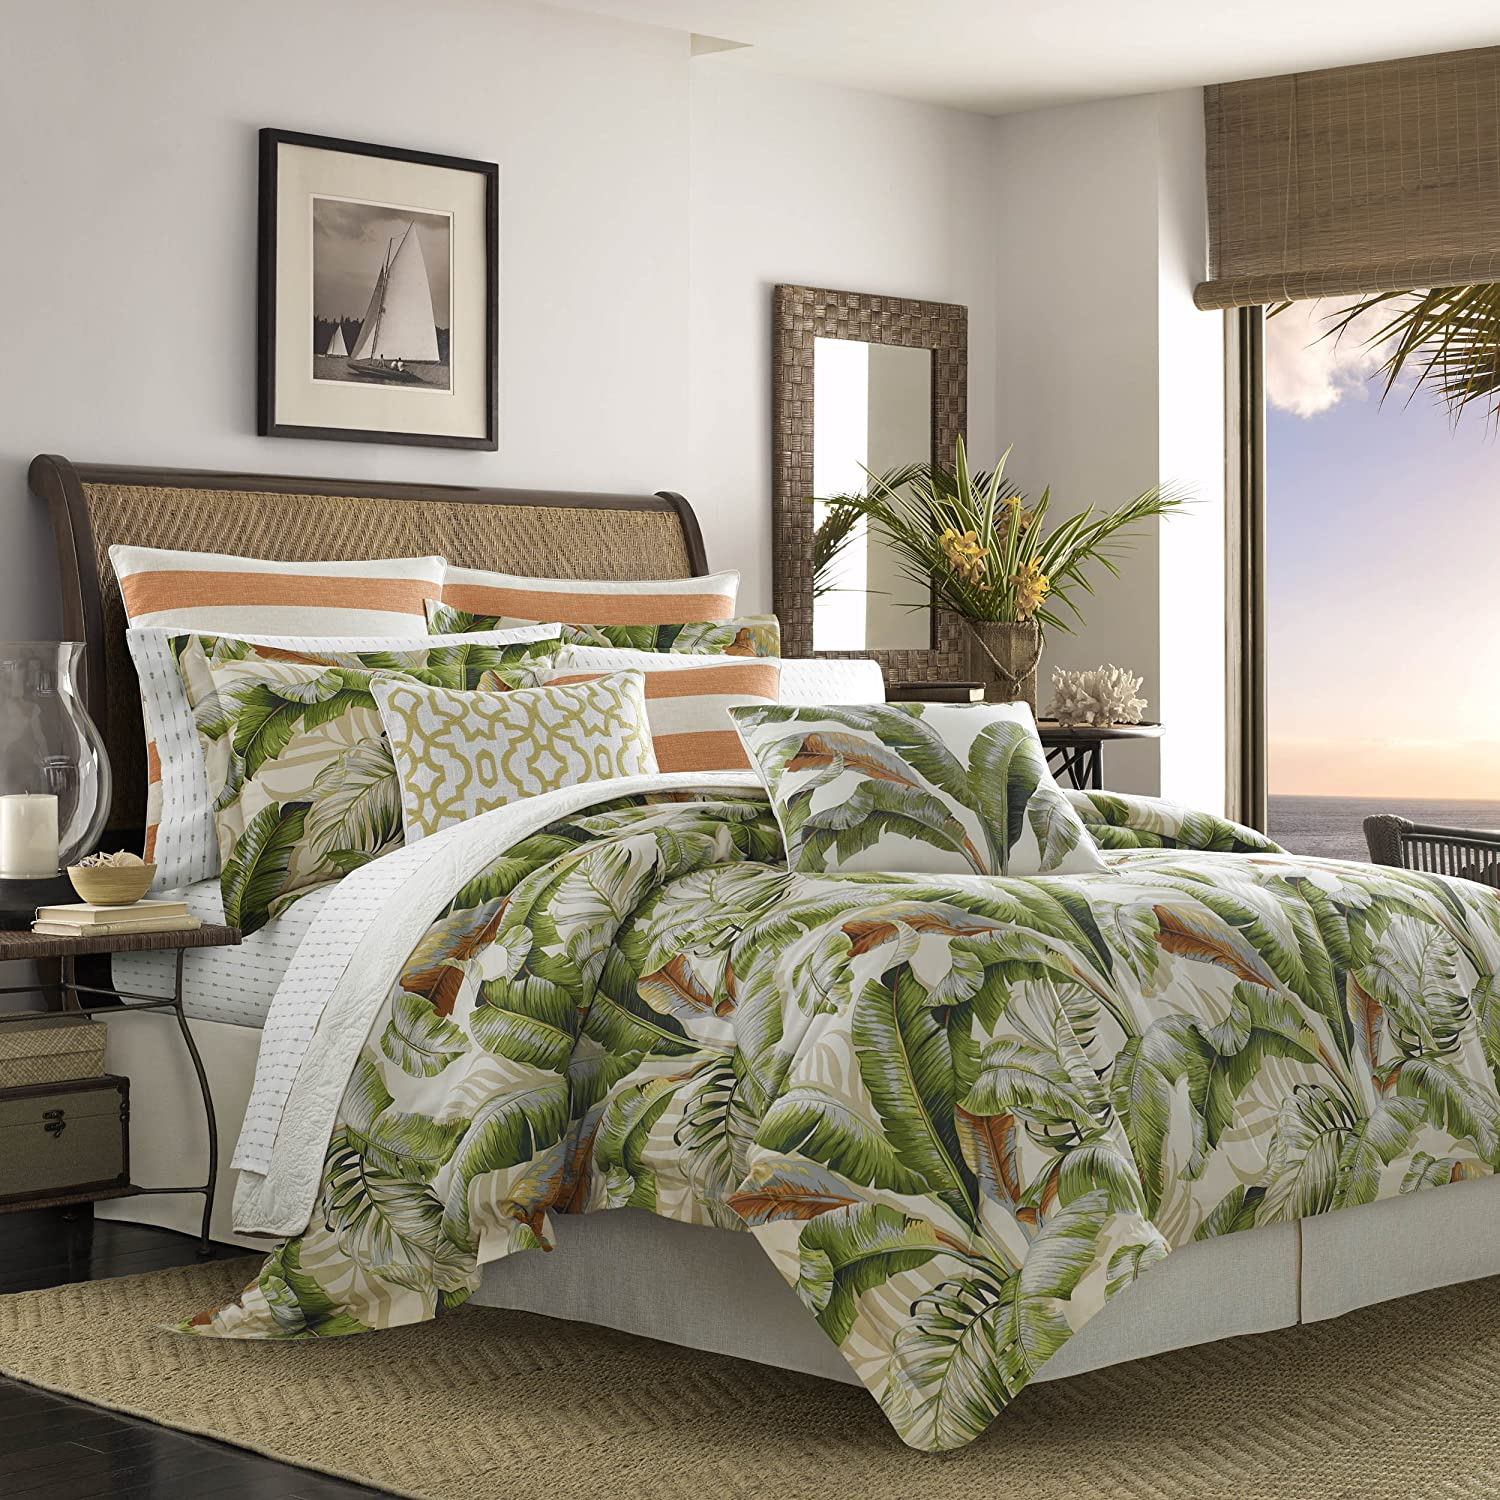 Tropical Leaves Bedding You Ll Love Ease Bedding With Style